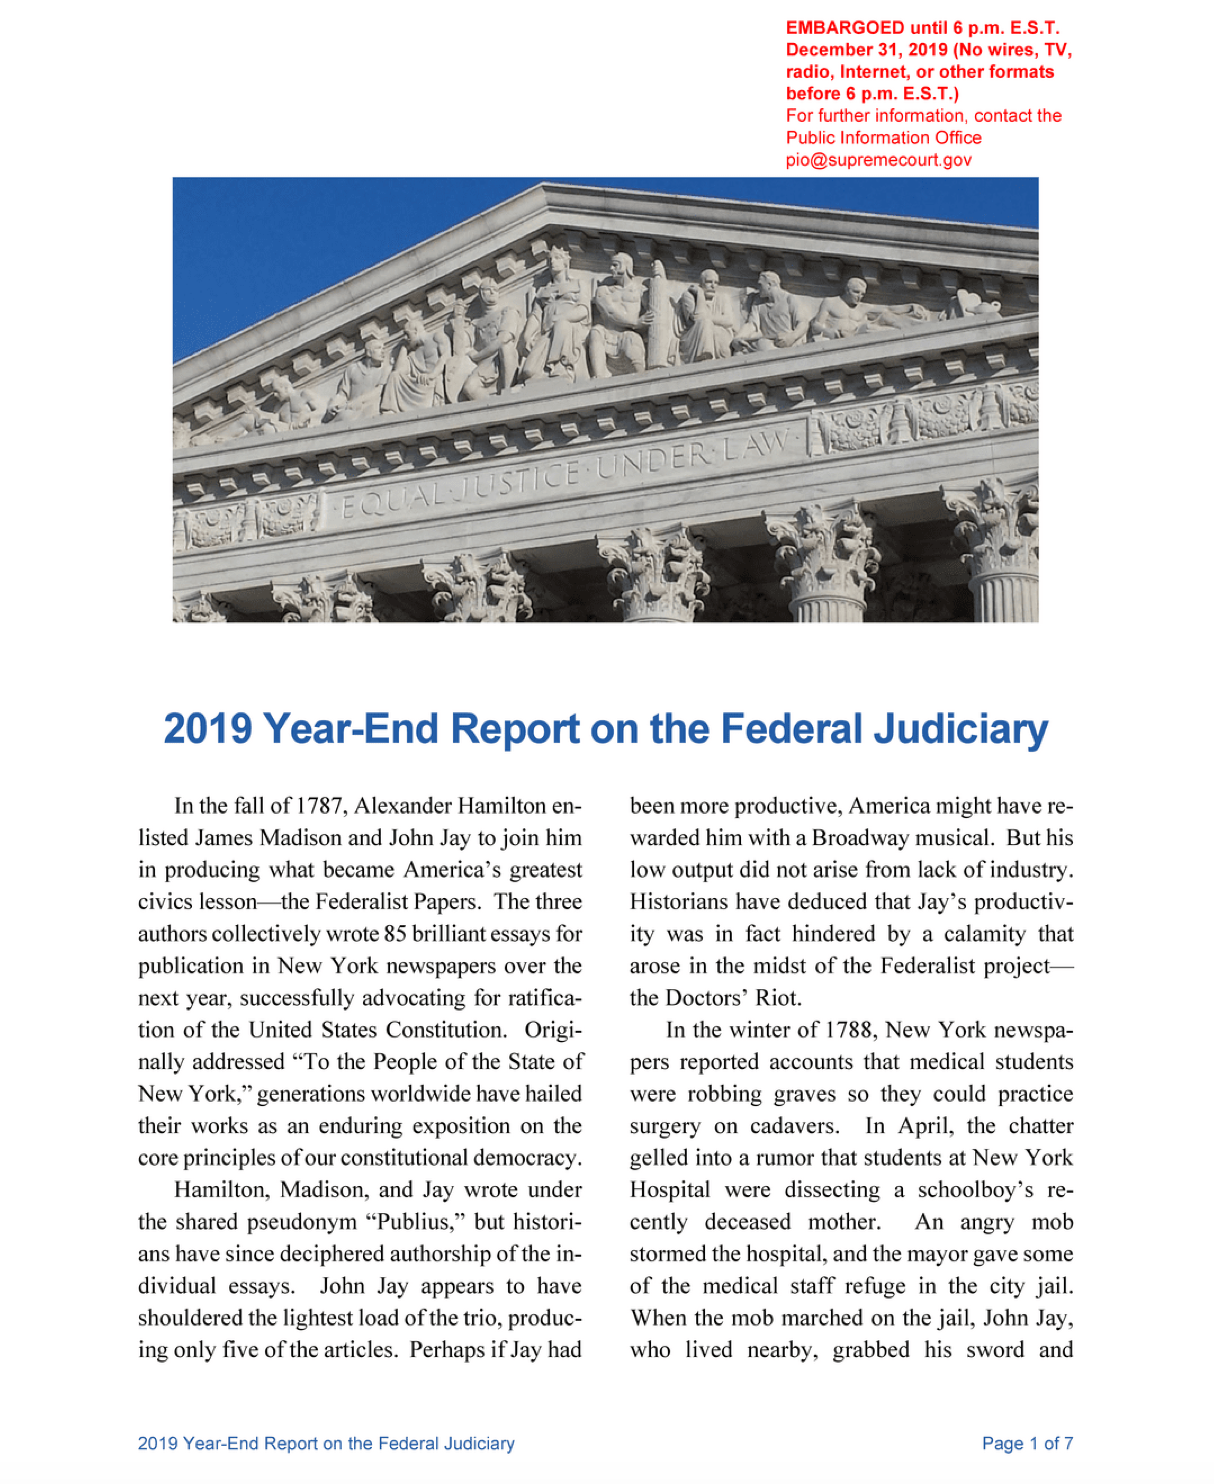 Chief Justice John G. Roberts published his annual Year-End Report on the Federal Judiciary. With the tensions among government branches – with an impeachment trial likely on the horizon – this year's report was widely anticipated.